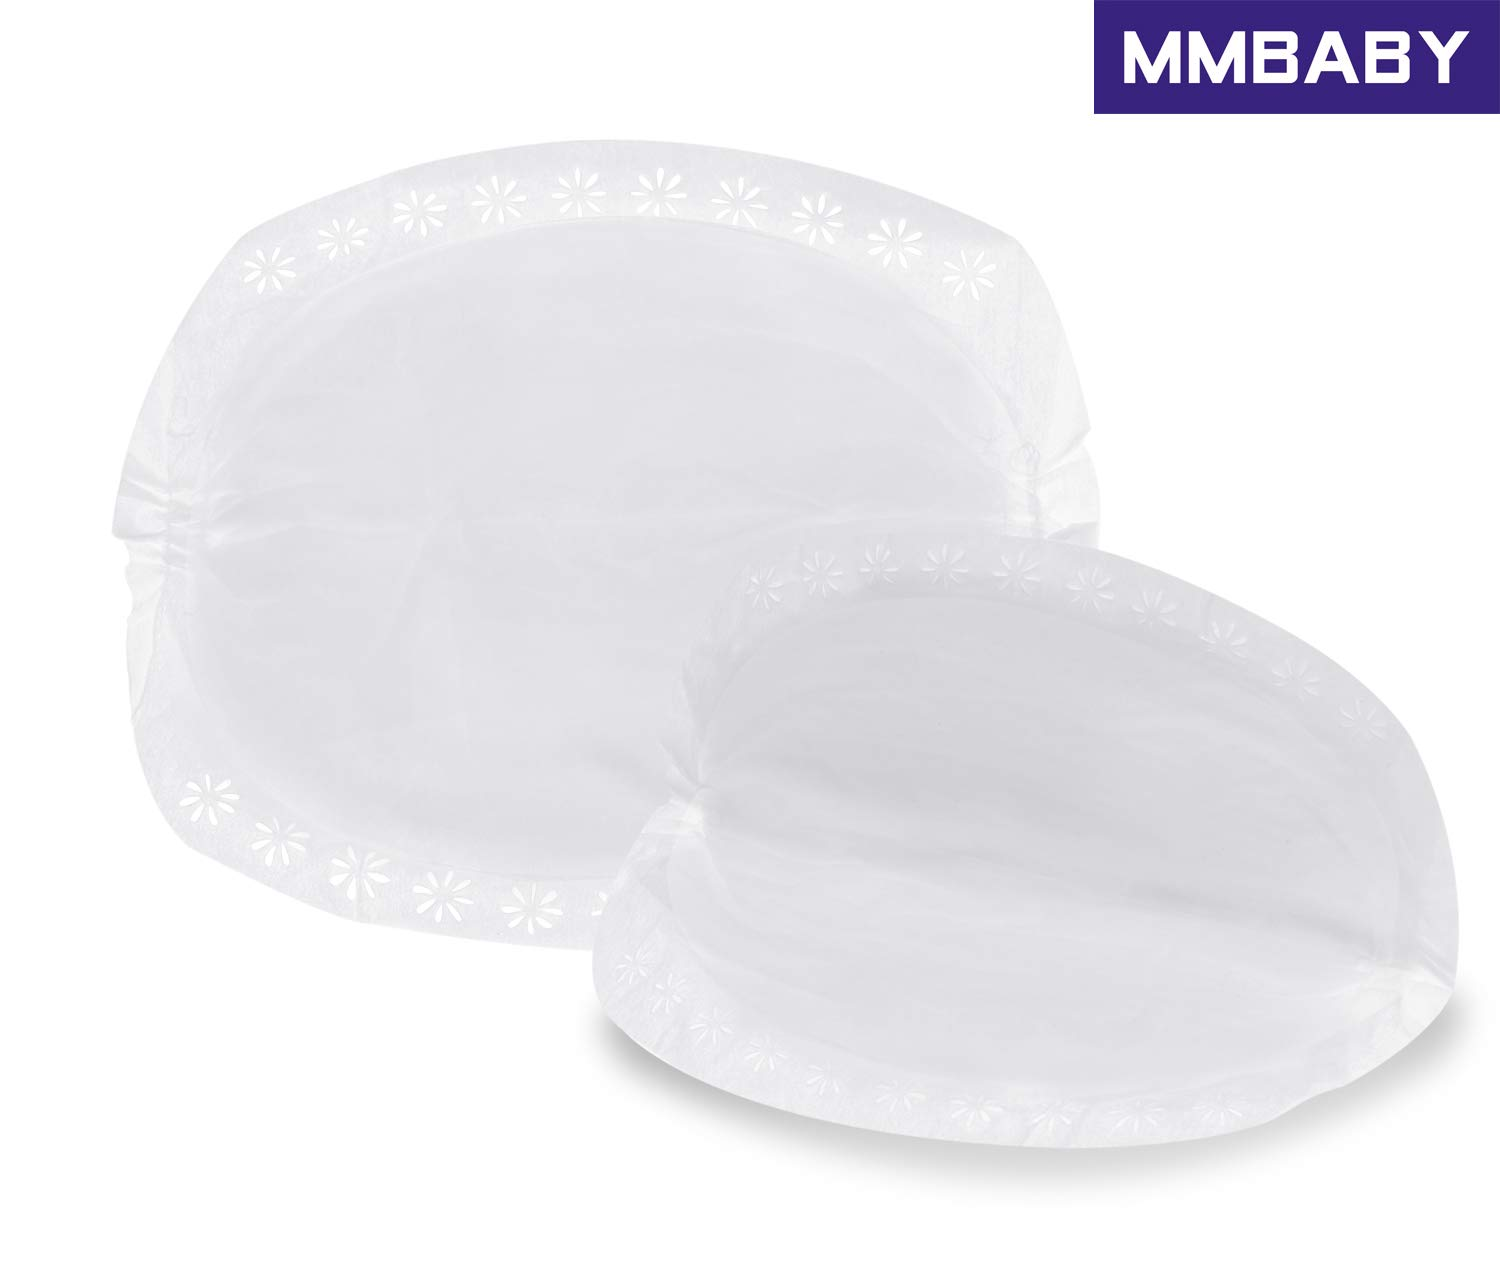 MMBABY Nursing Pads,1 Packs of 60 Stay Dry Disposable Breast Pads 2 Packs of 120 Count